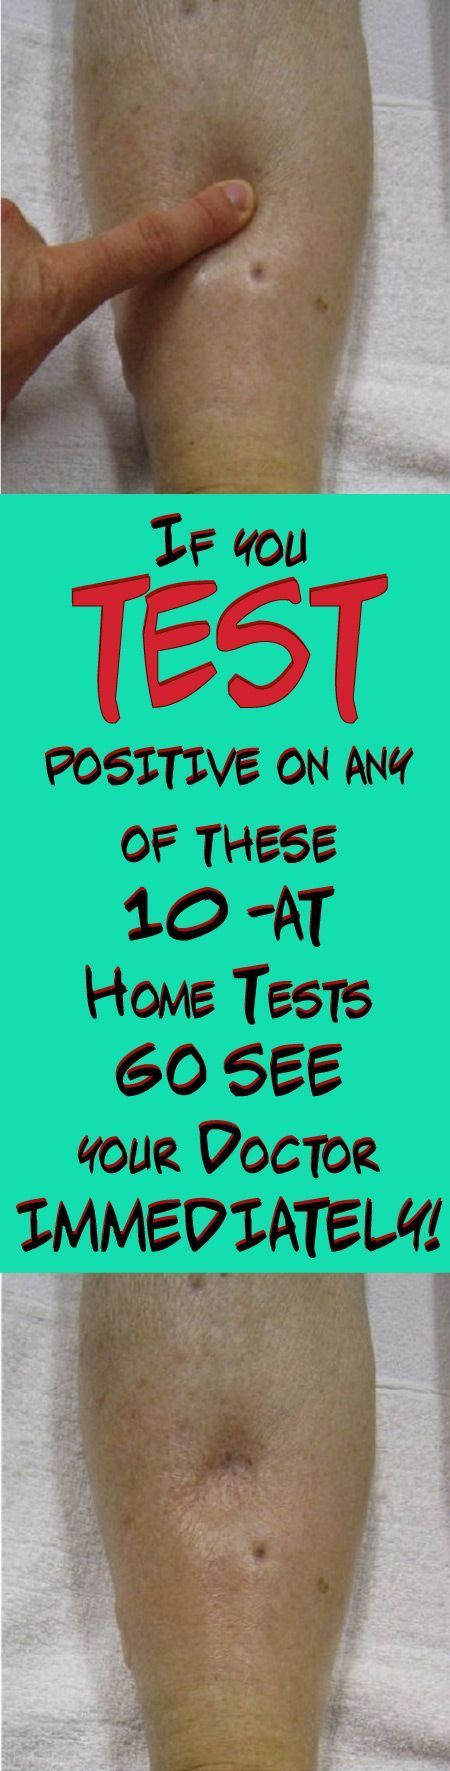 GO SEE YOUR DOCTOR IMMEDIATELY IF YOU TEST POSITIVE ON ANY OF THESE 10 AT-HOME TESTS…